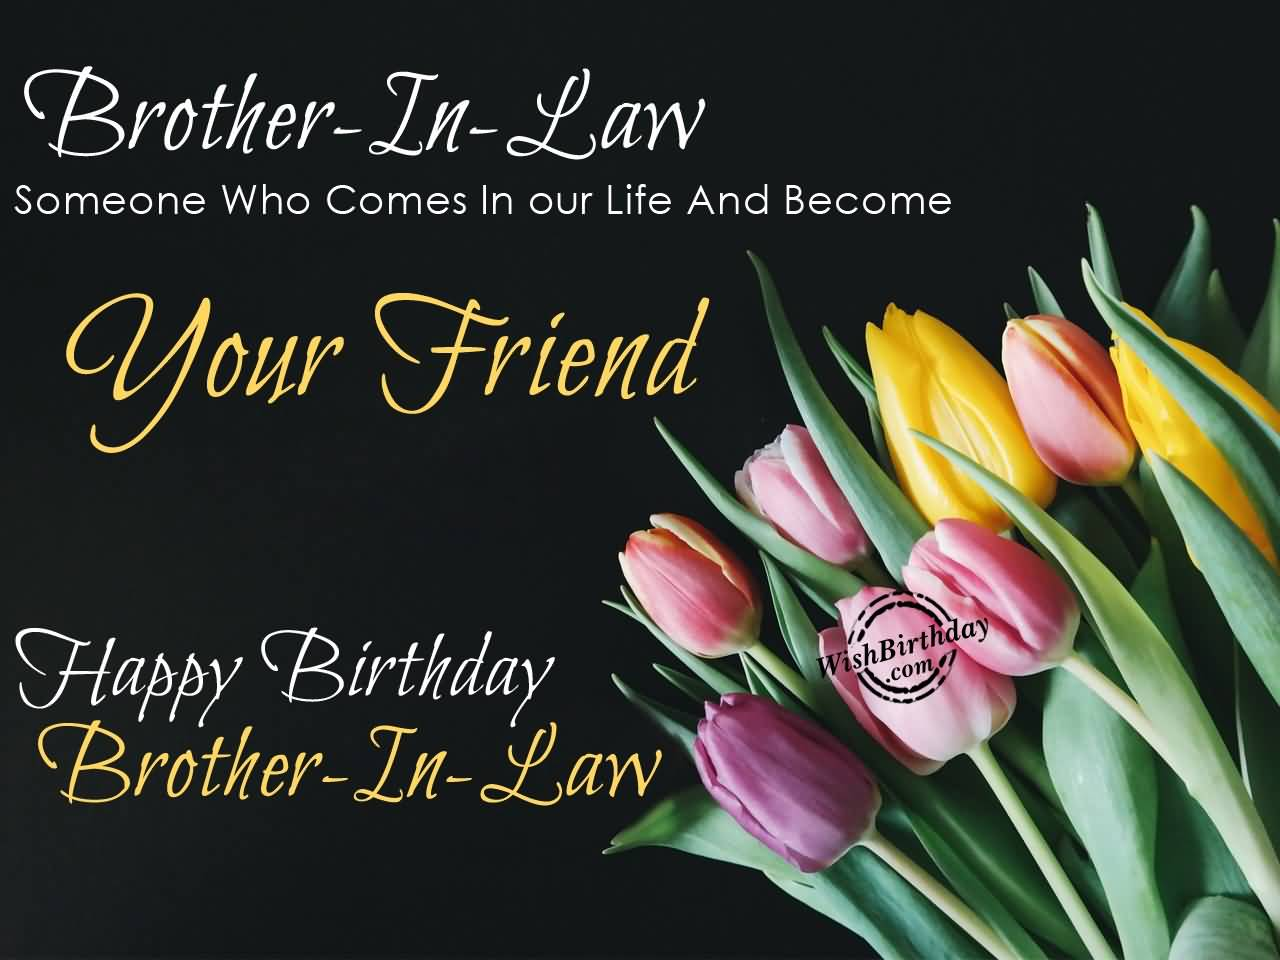 Birthday wishes for brother in law ecards images wonderful brother in law birthday wishes e card m4hsunfo